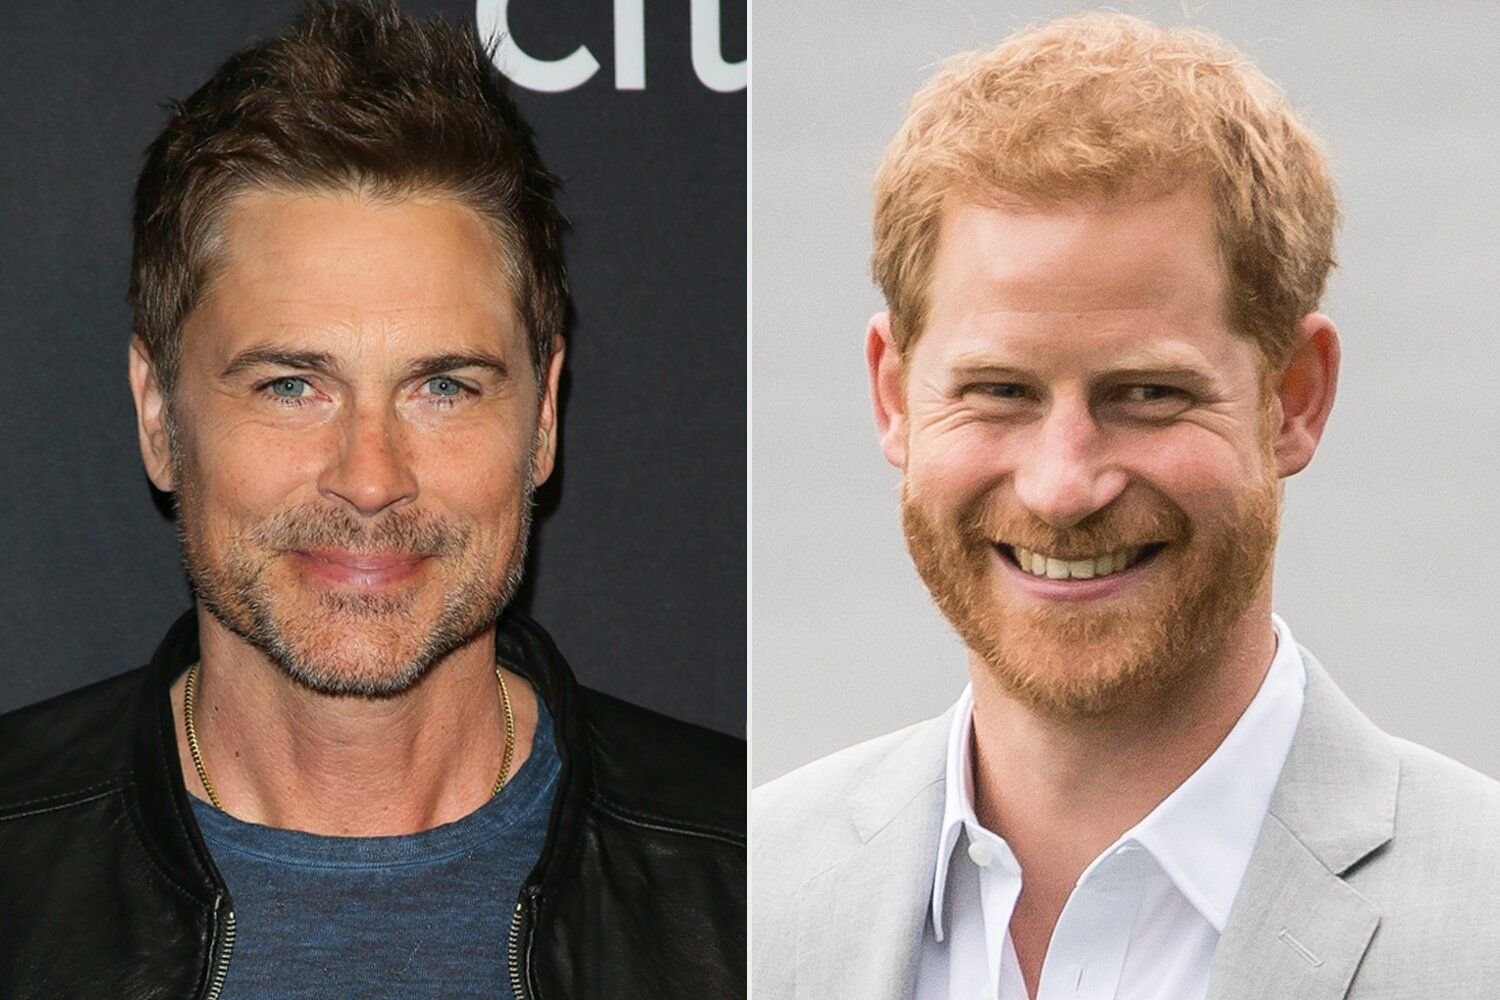 Prince Harry may be an athlete in a ponytail, Rob Lowe claims his California neighbor